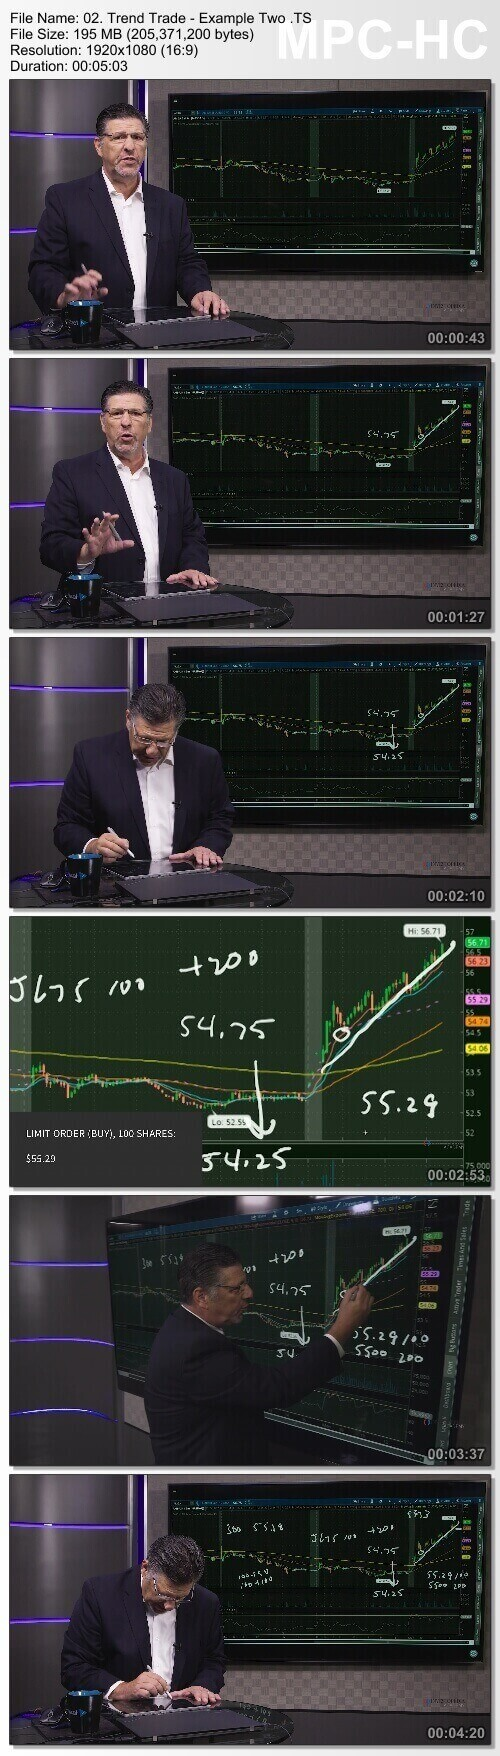 Day Trading Course Investopedia Academy by David Green